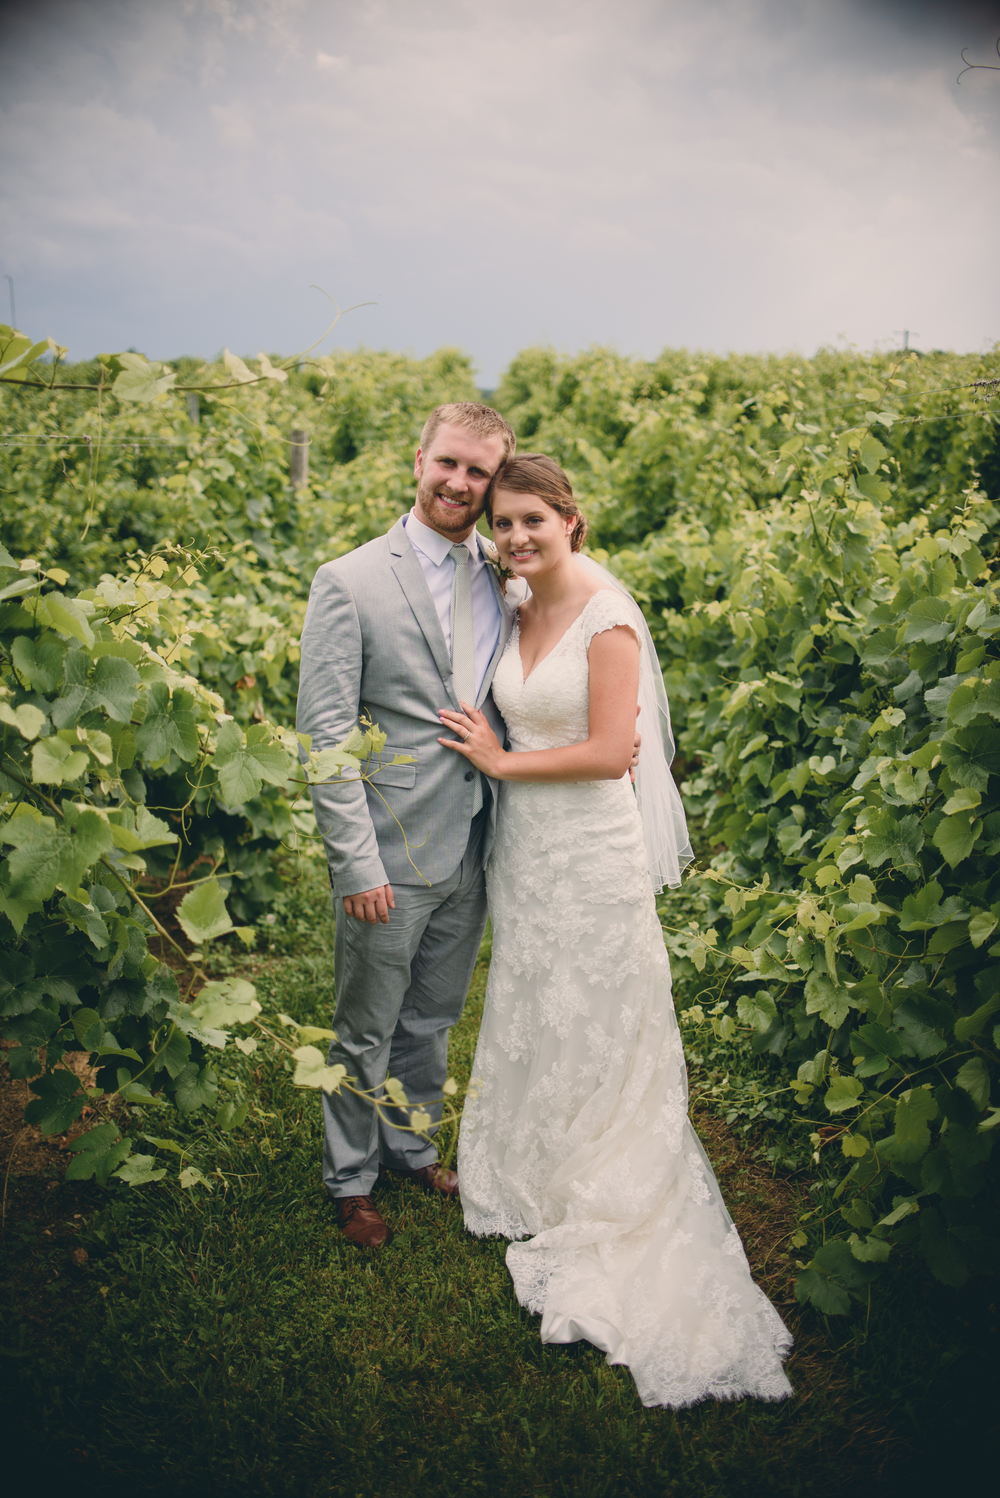 vamountainvineyards-weddings-weddingphotographer-virginia-patcoriphotography(493of800).jpg